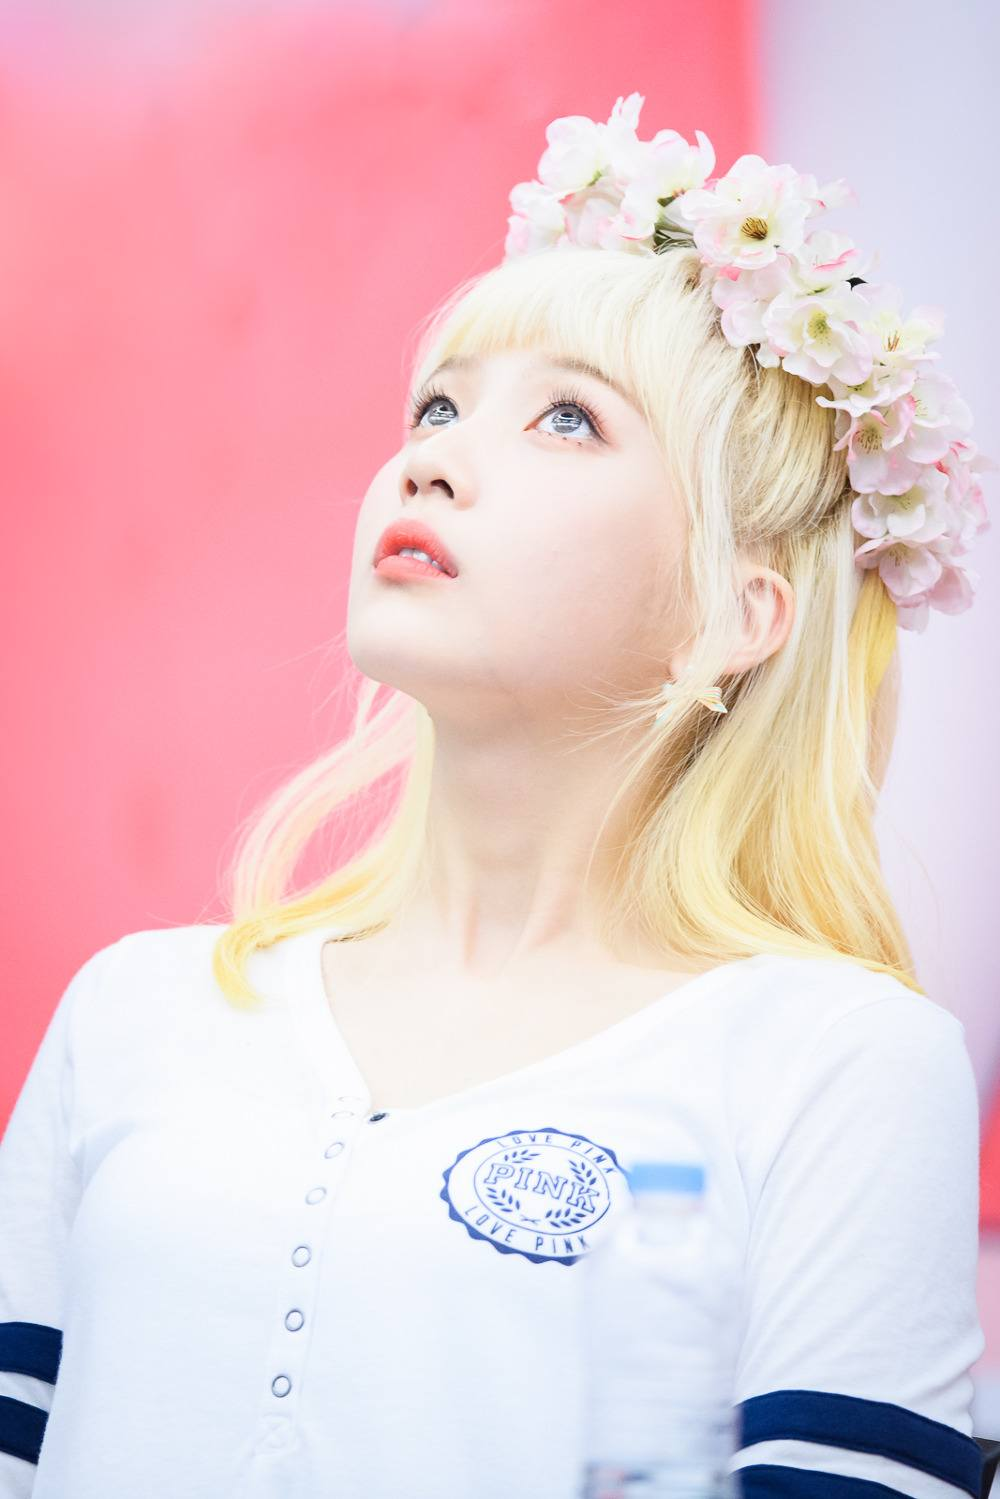 Red Velvet Joy Spotted With Platinum Bloinde Hair And Blue Eyes